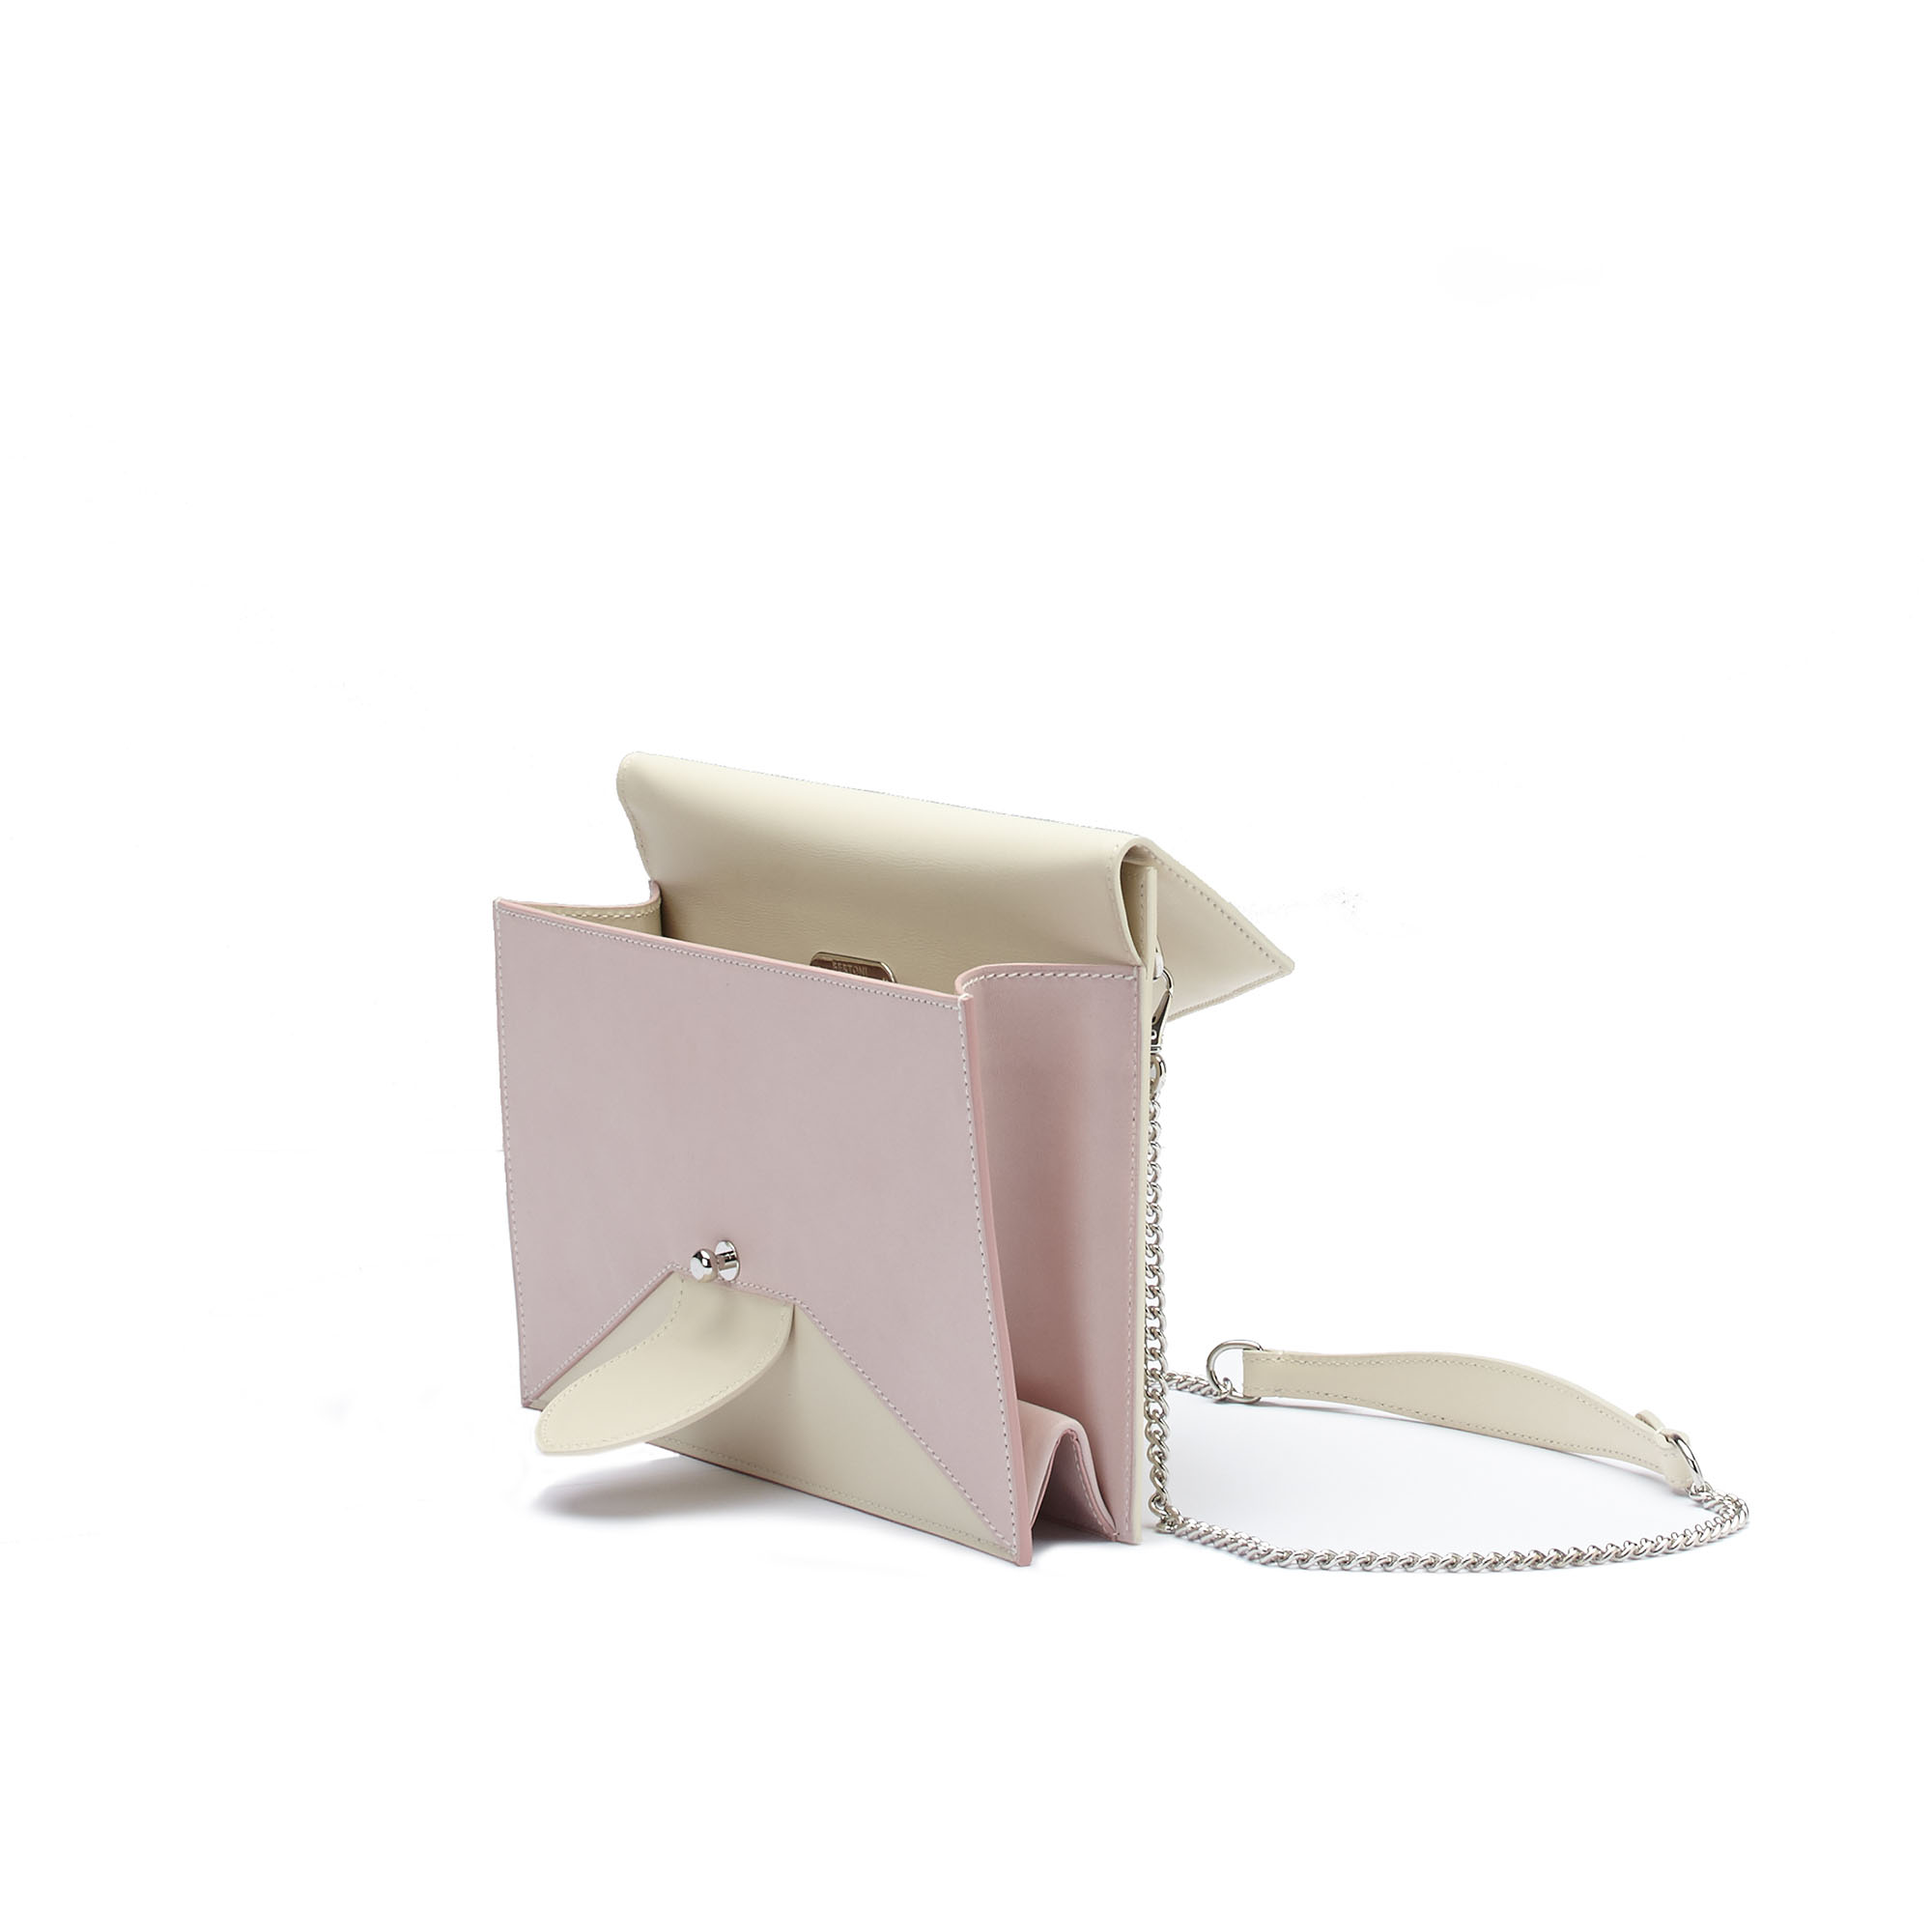 The ivory and pink french calf Dafne Chain bag by Bertoni 1949 03